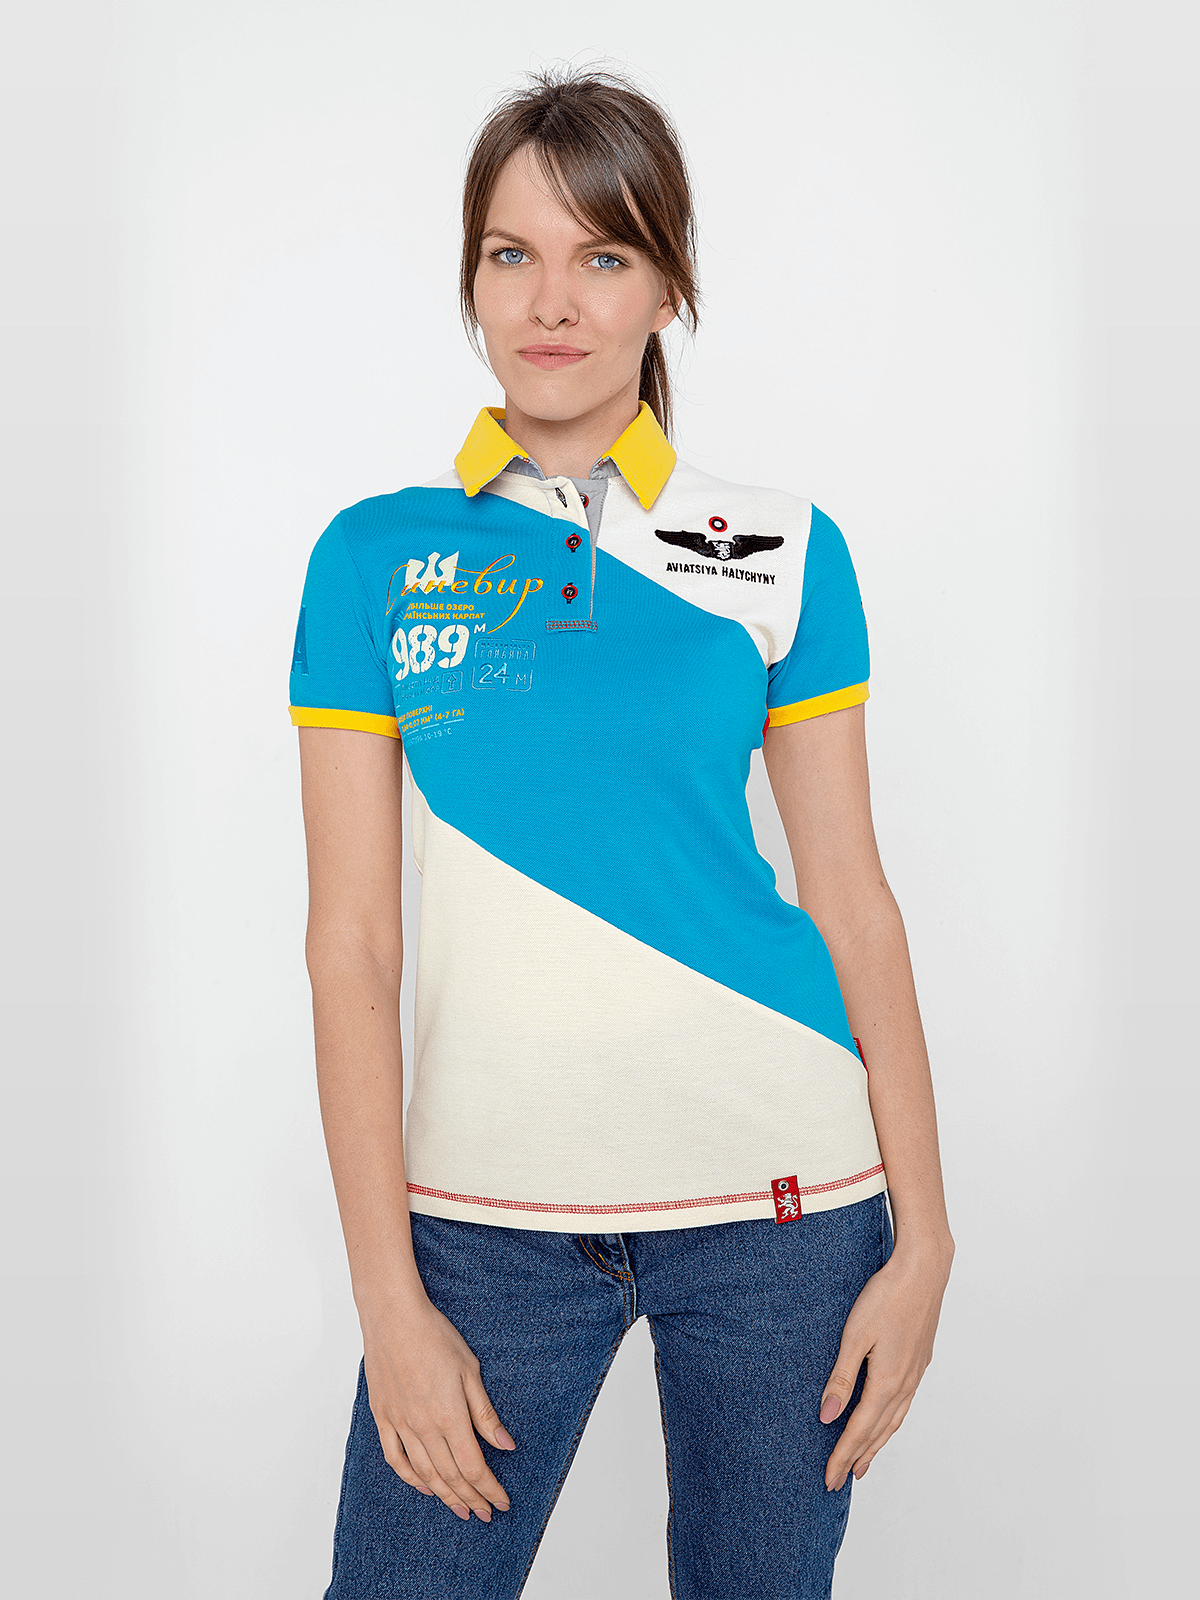 Women's Polo Shirt Synevyr. Color turquoise. Pique fabric: 100% cotton.